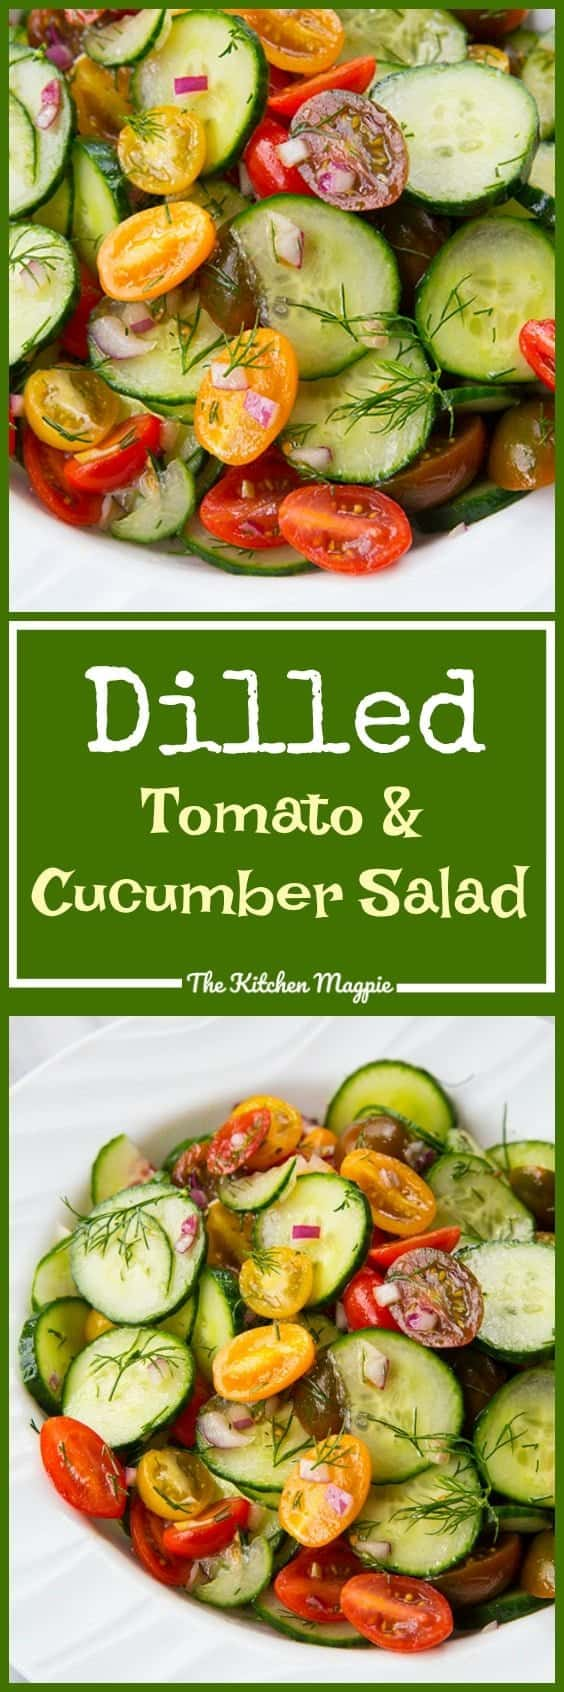 Cucumber and Tomato Salad with Dill. This is easily made with ingredients straight from your summer garden!